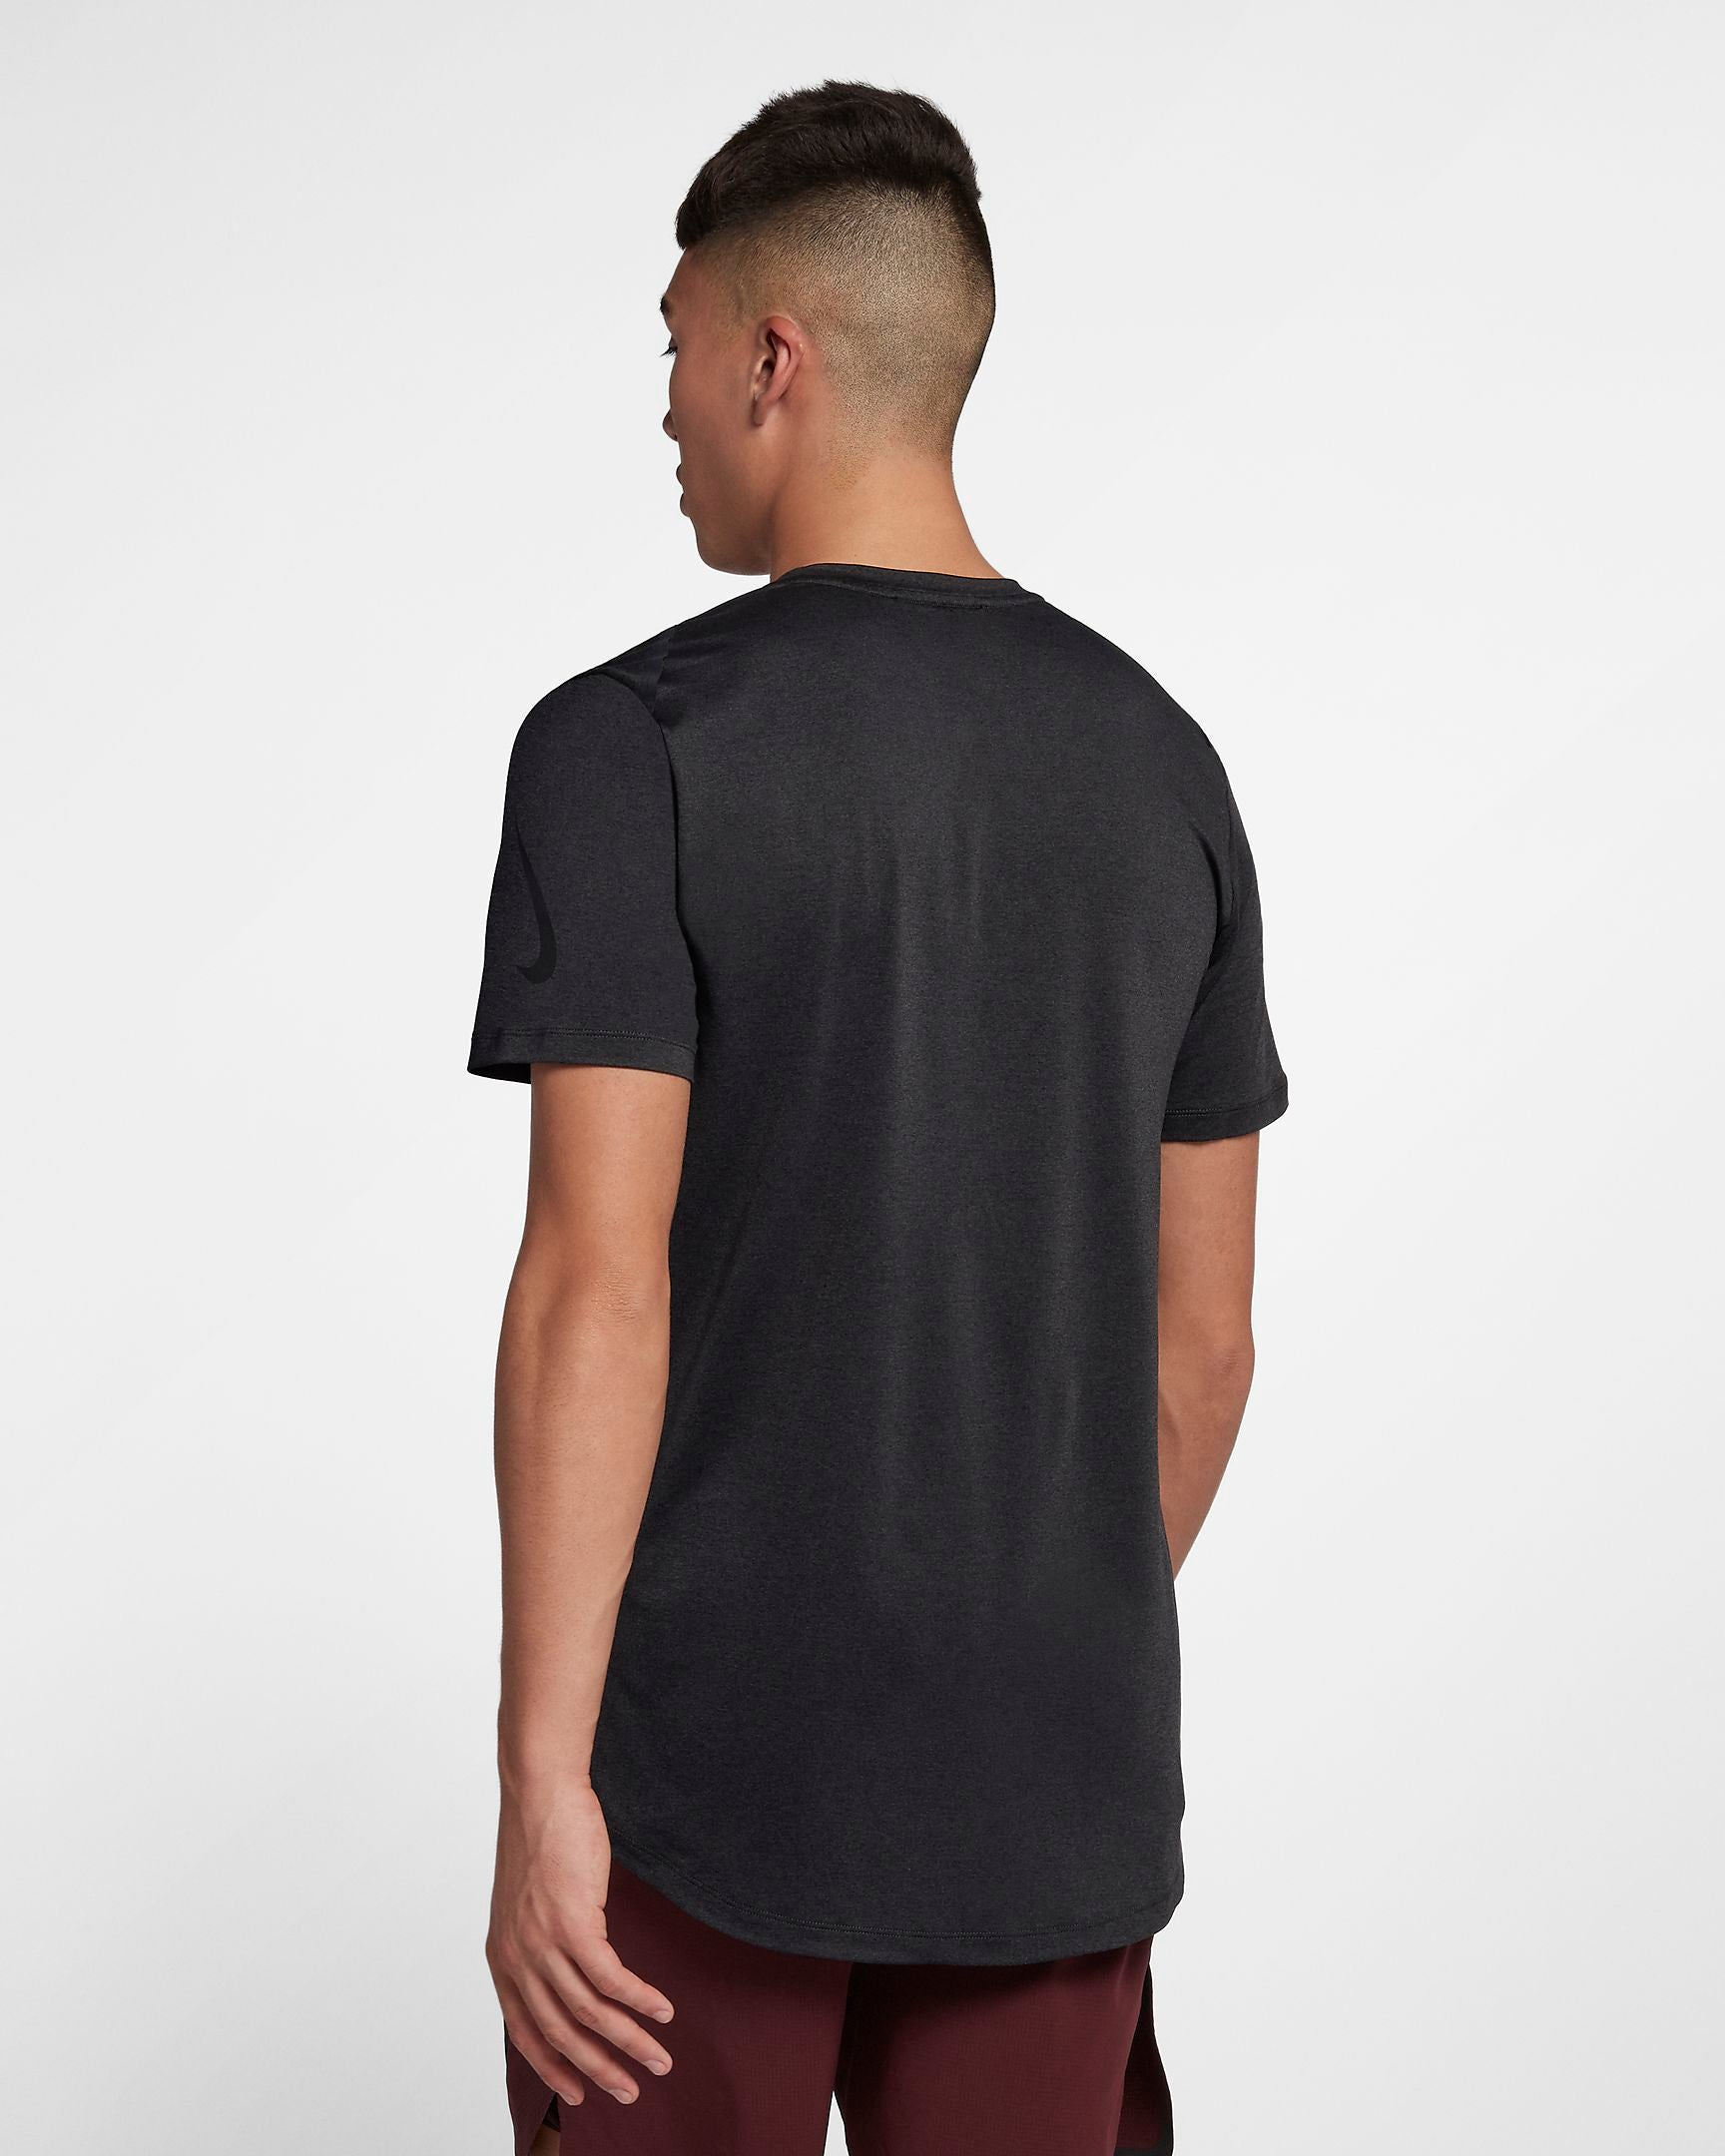 Men's Nike DRY Training Shirt.    928015-010